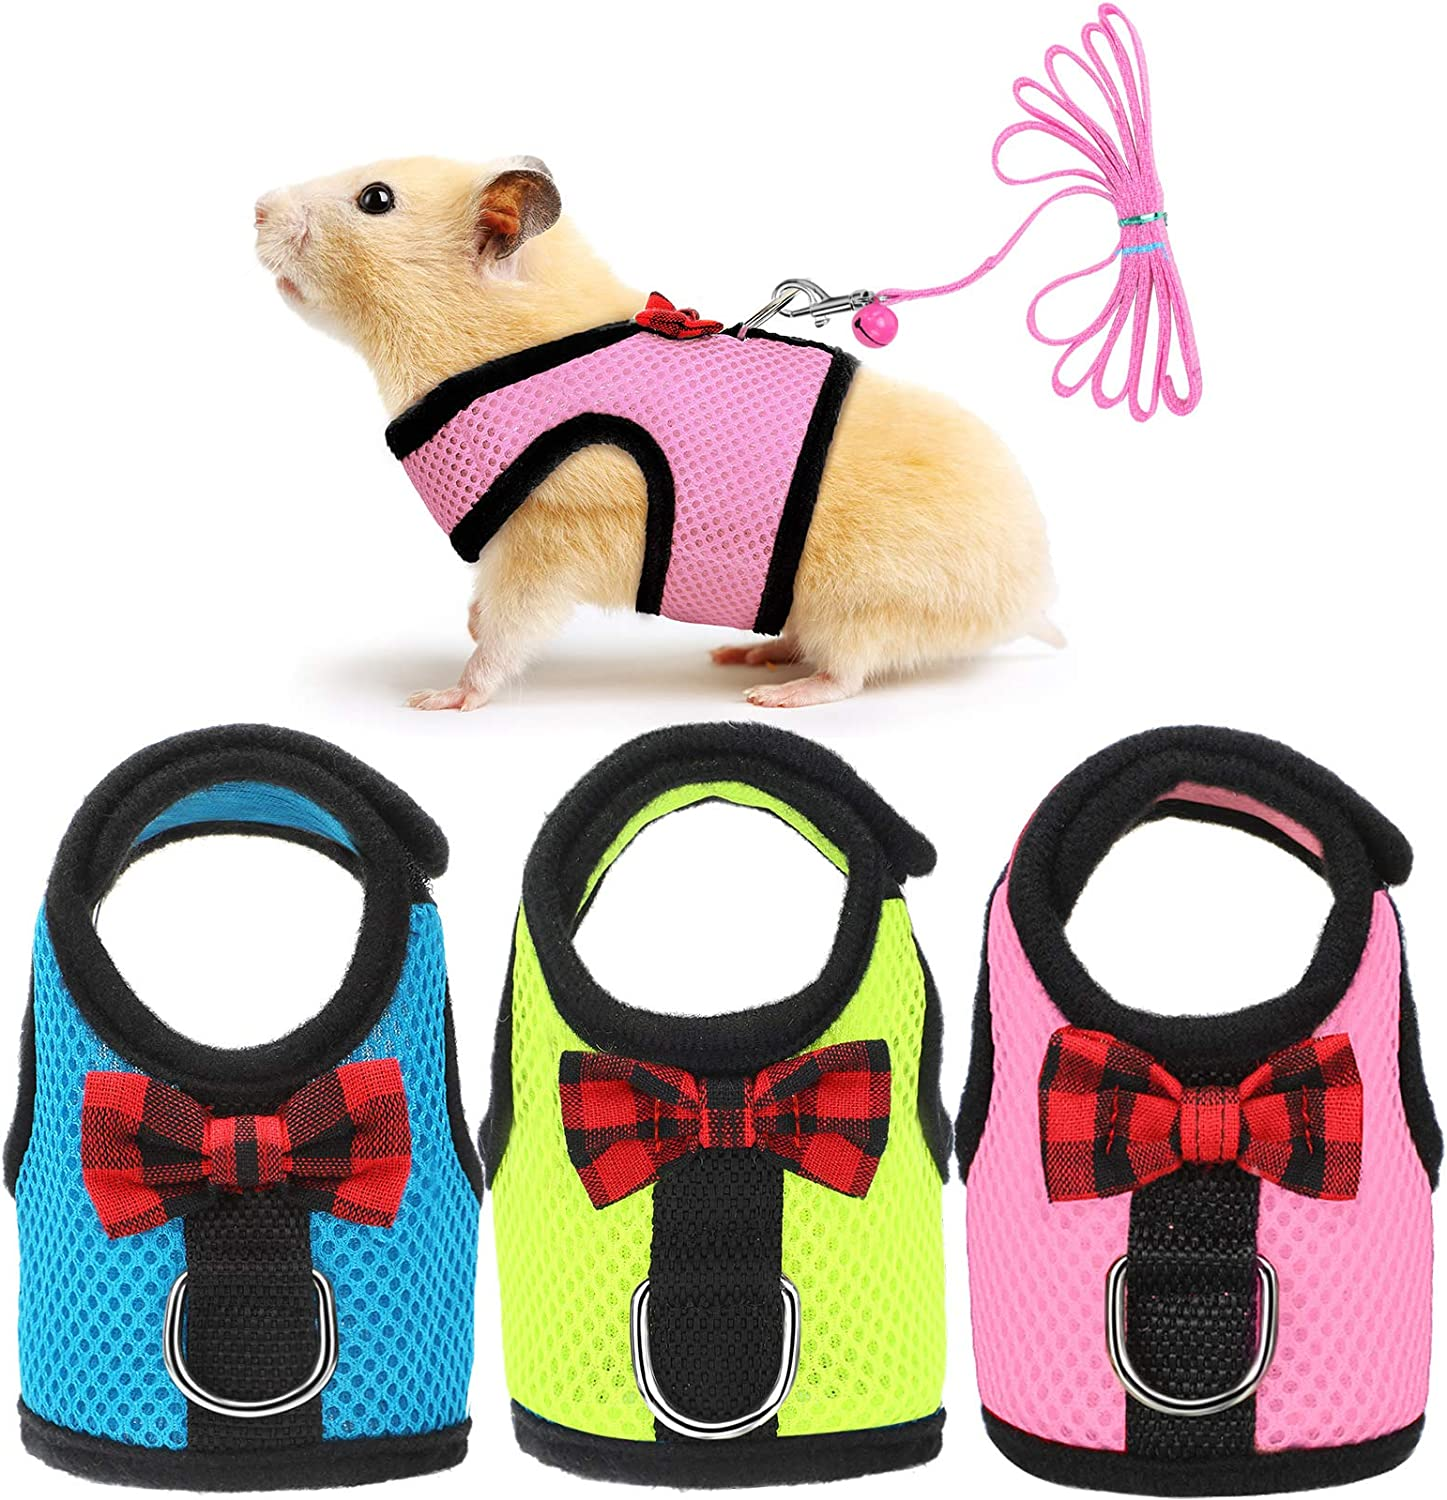 3 Pieces Max 54% OFF Guinea Pig Harness and Small Soft Al sold out. Pet Harnes Mesh Leash